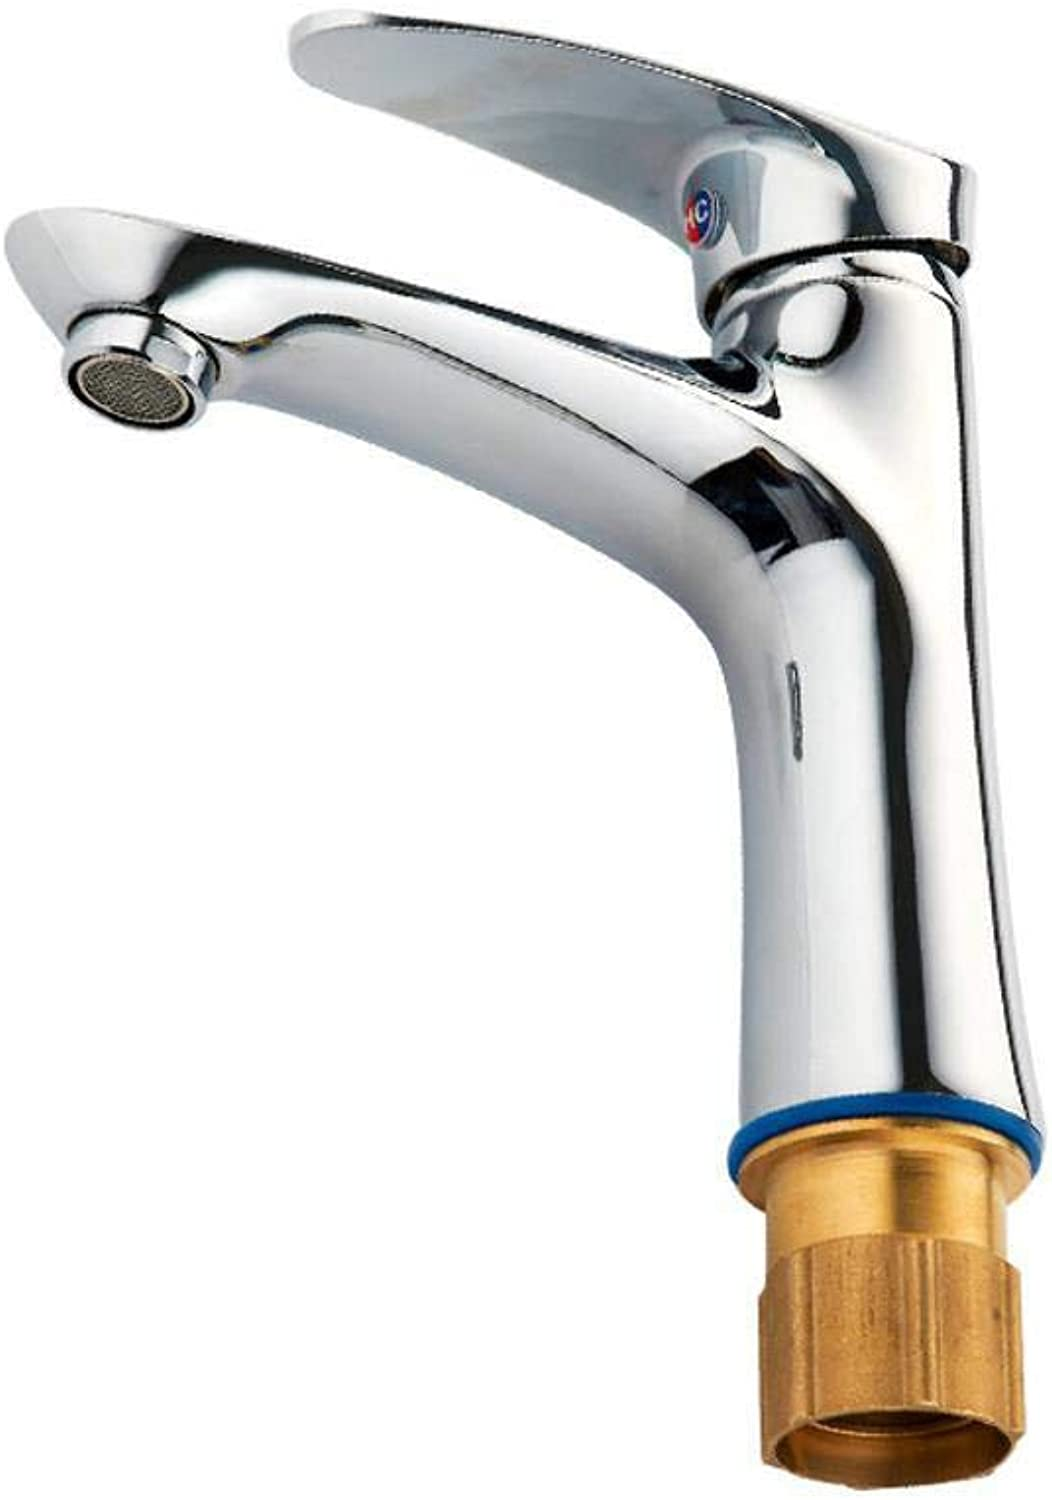 Qpw Washbasin Basin hot and Cold Faucet Heightening Faucet